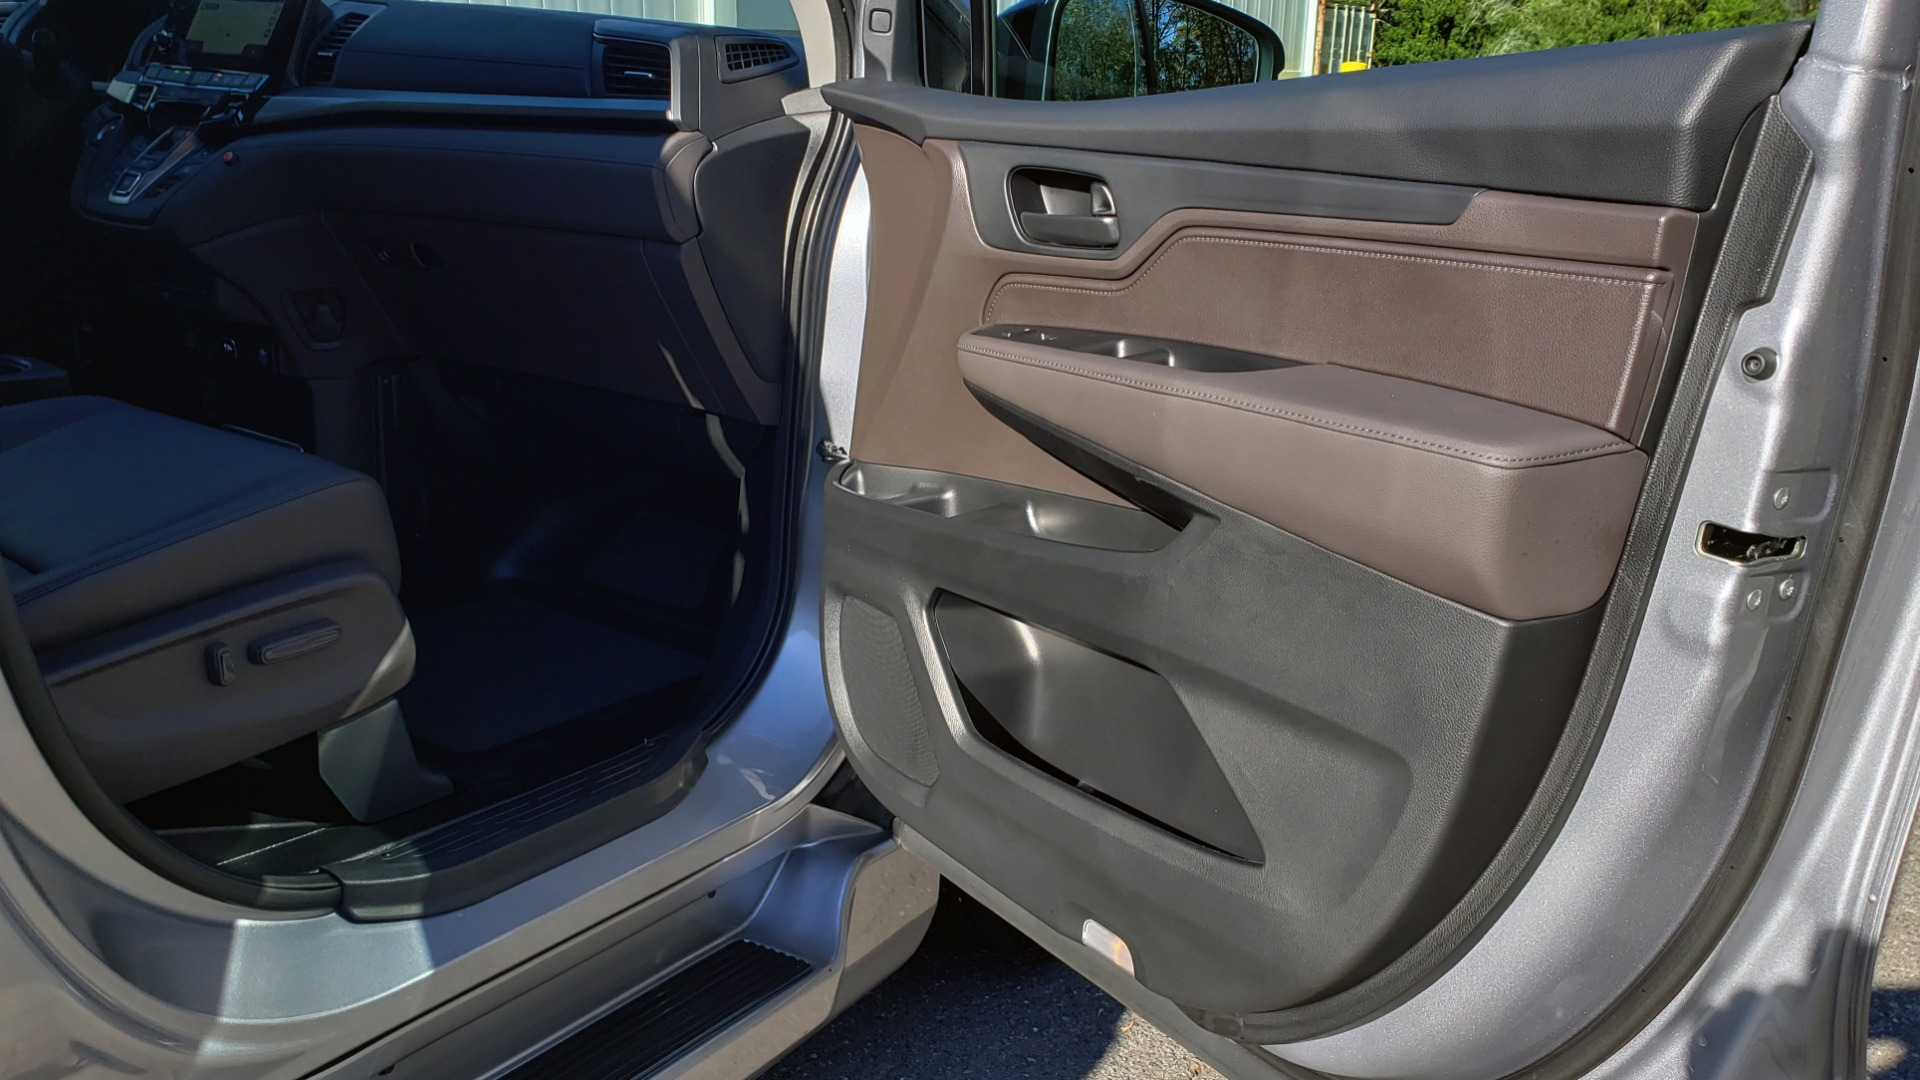 Used 2019 Honda ODYSSEY EX-L BRAUNABILITY / NAV / RES / LKA / BLUE-RAY / SUNROOF / REARVIEW for sale $49,999 at Formula Imports in Charlotte NC 28227 36